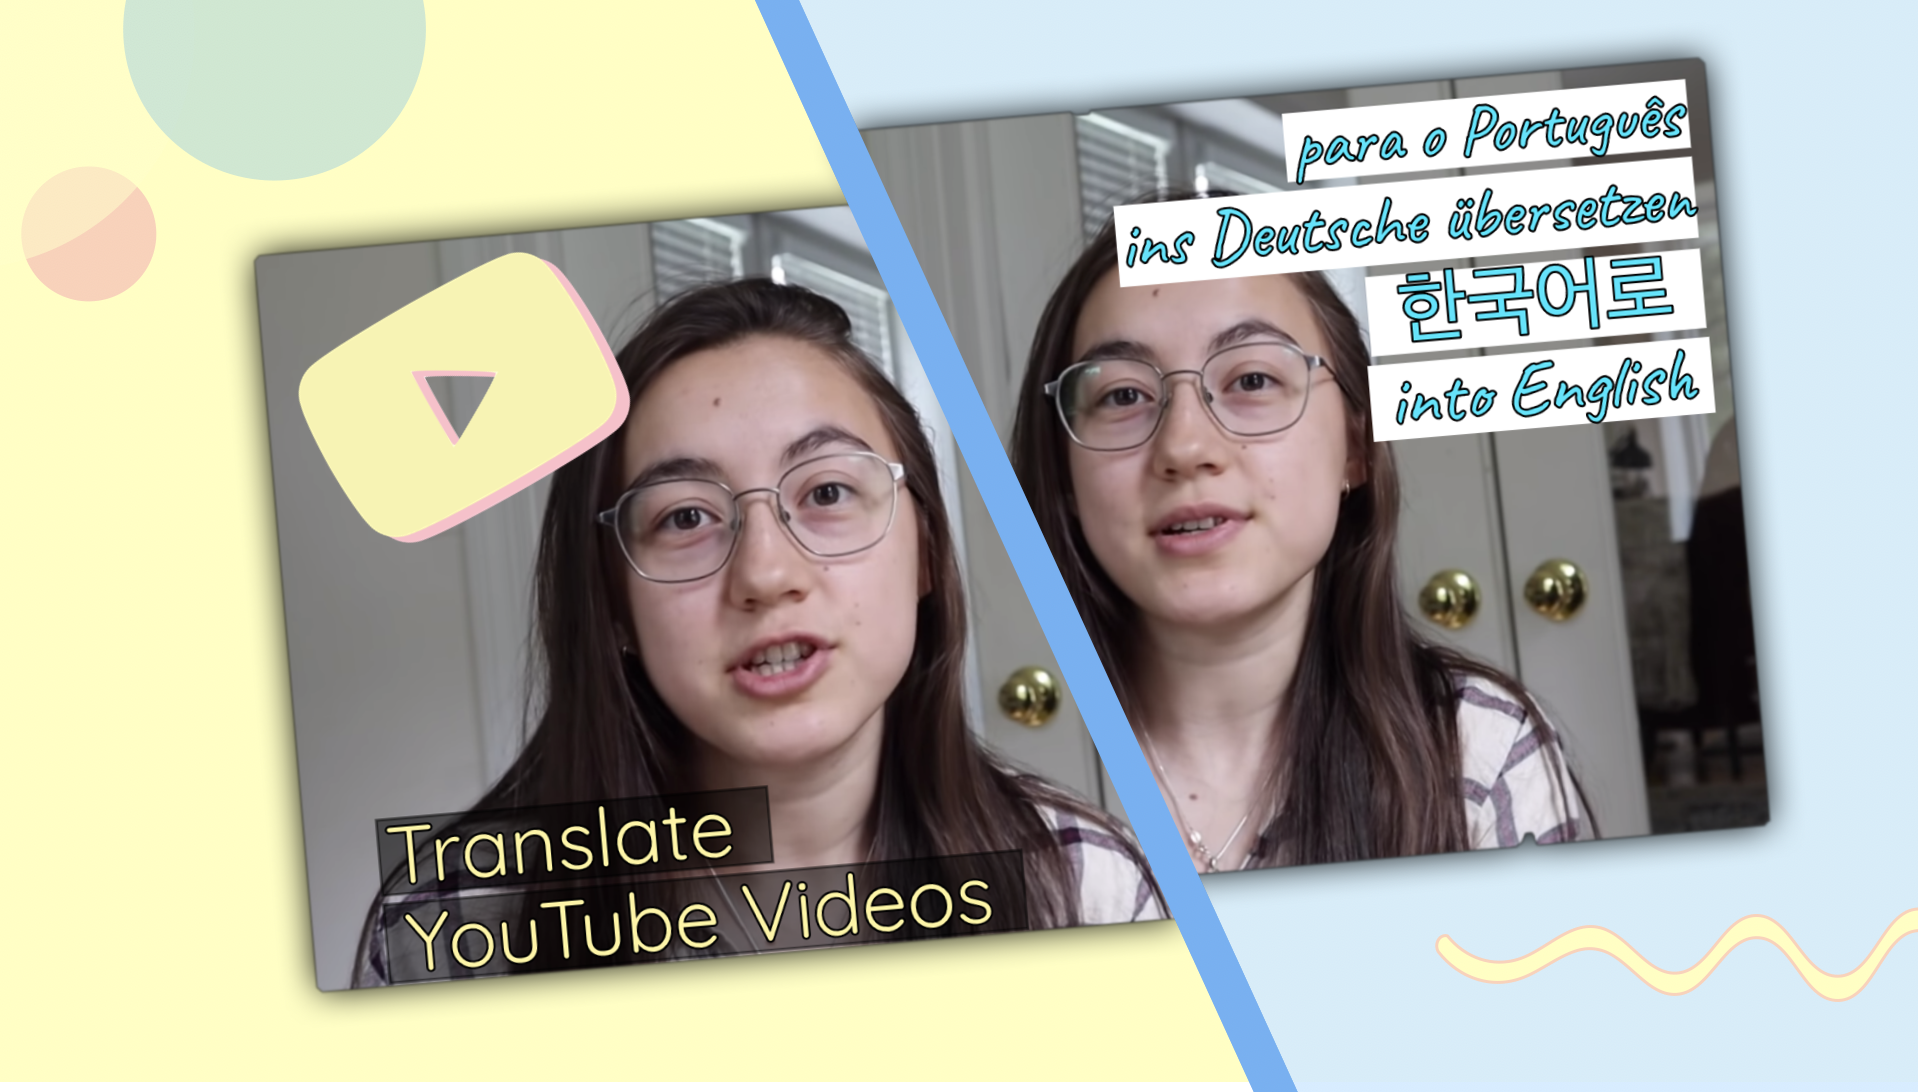 How to Translate YouTube Videos for Free